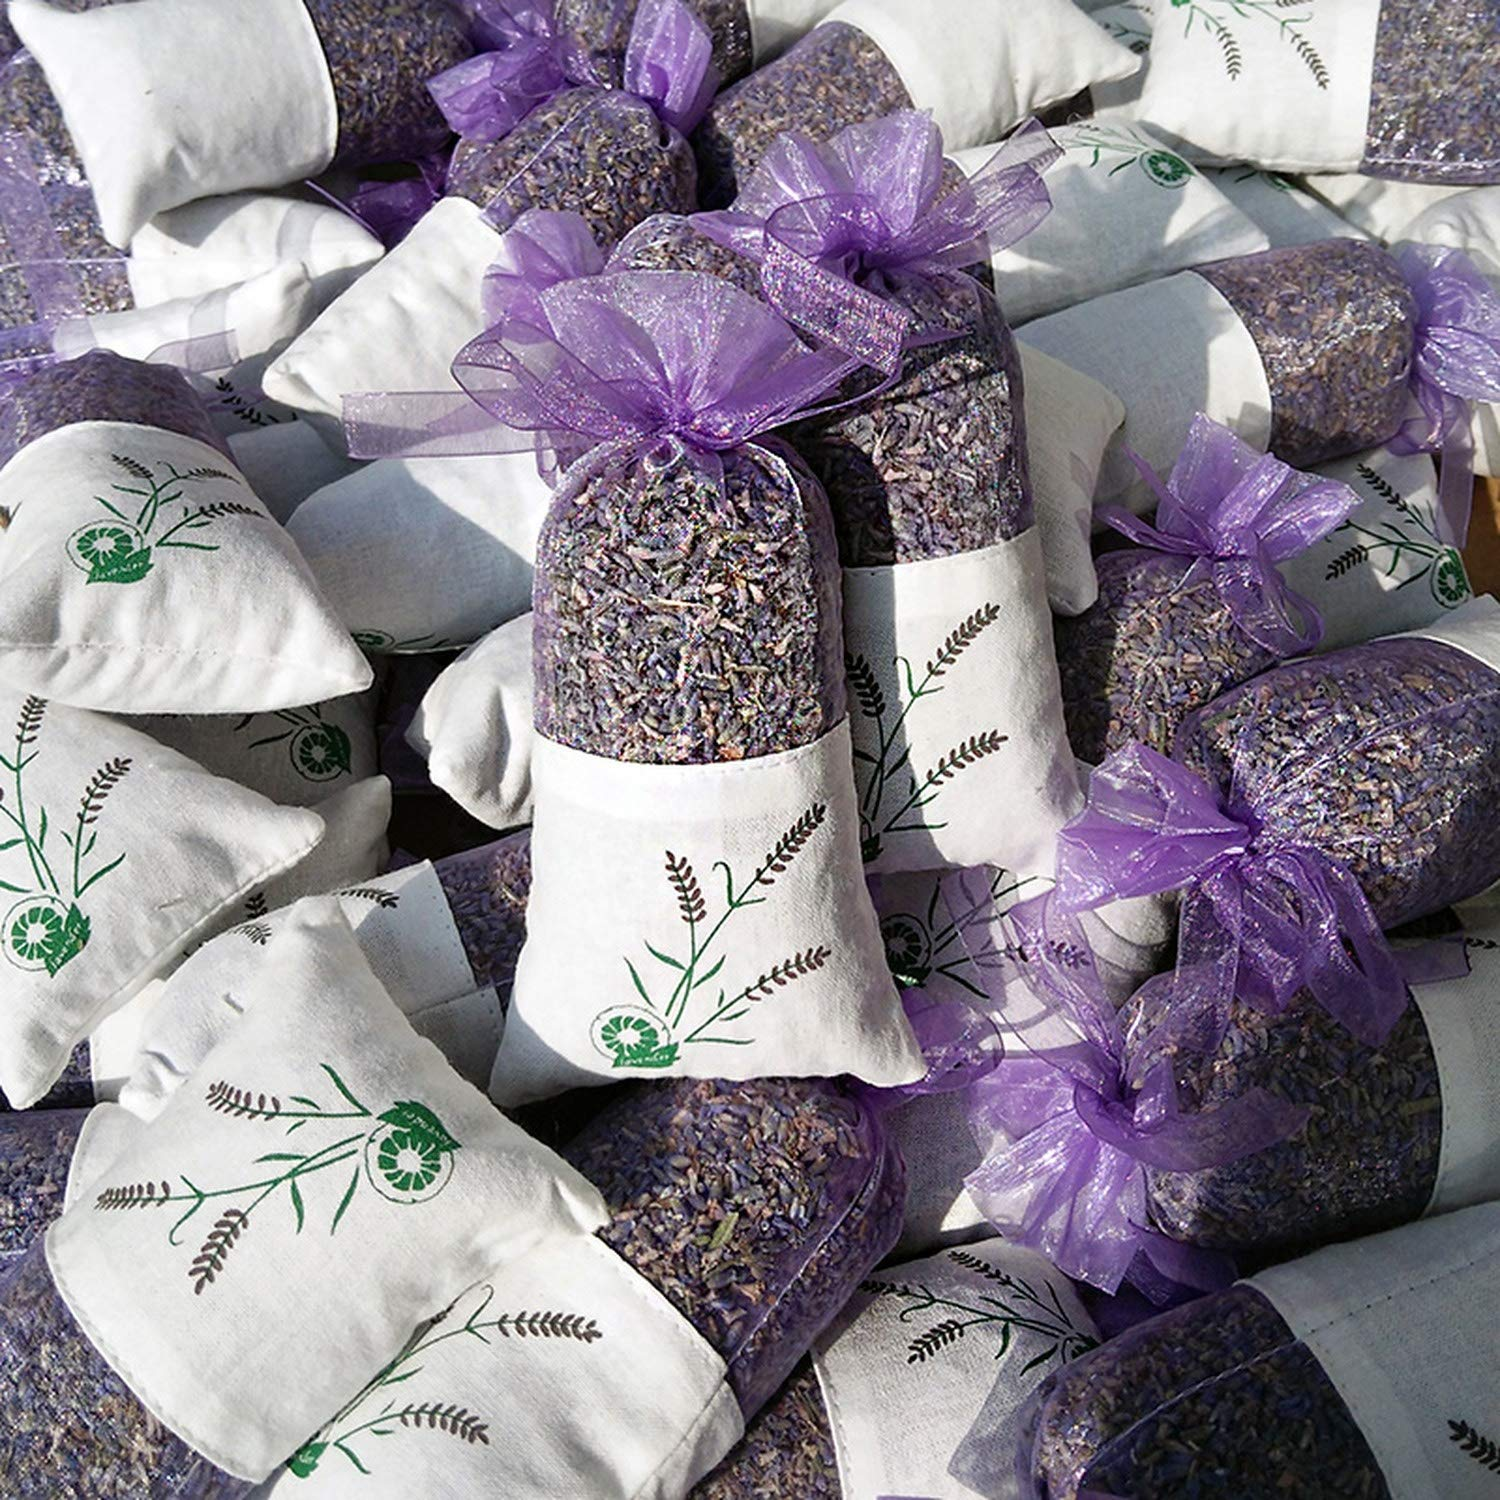 yuexianghui Natural Dried Flowers Lavender Bud Sachet Decorative Flower Aromatic Air Fresh Living Room Drawer,6 Pcs by yuexianghui (Image #4)